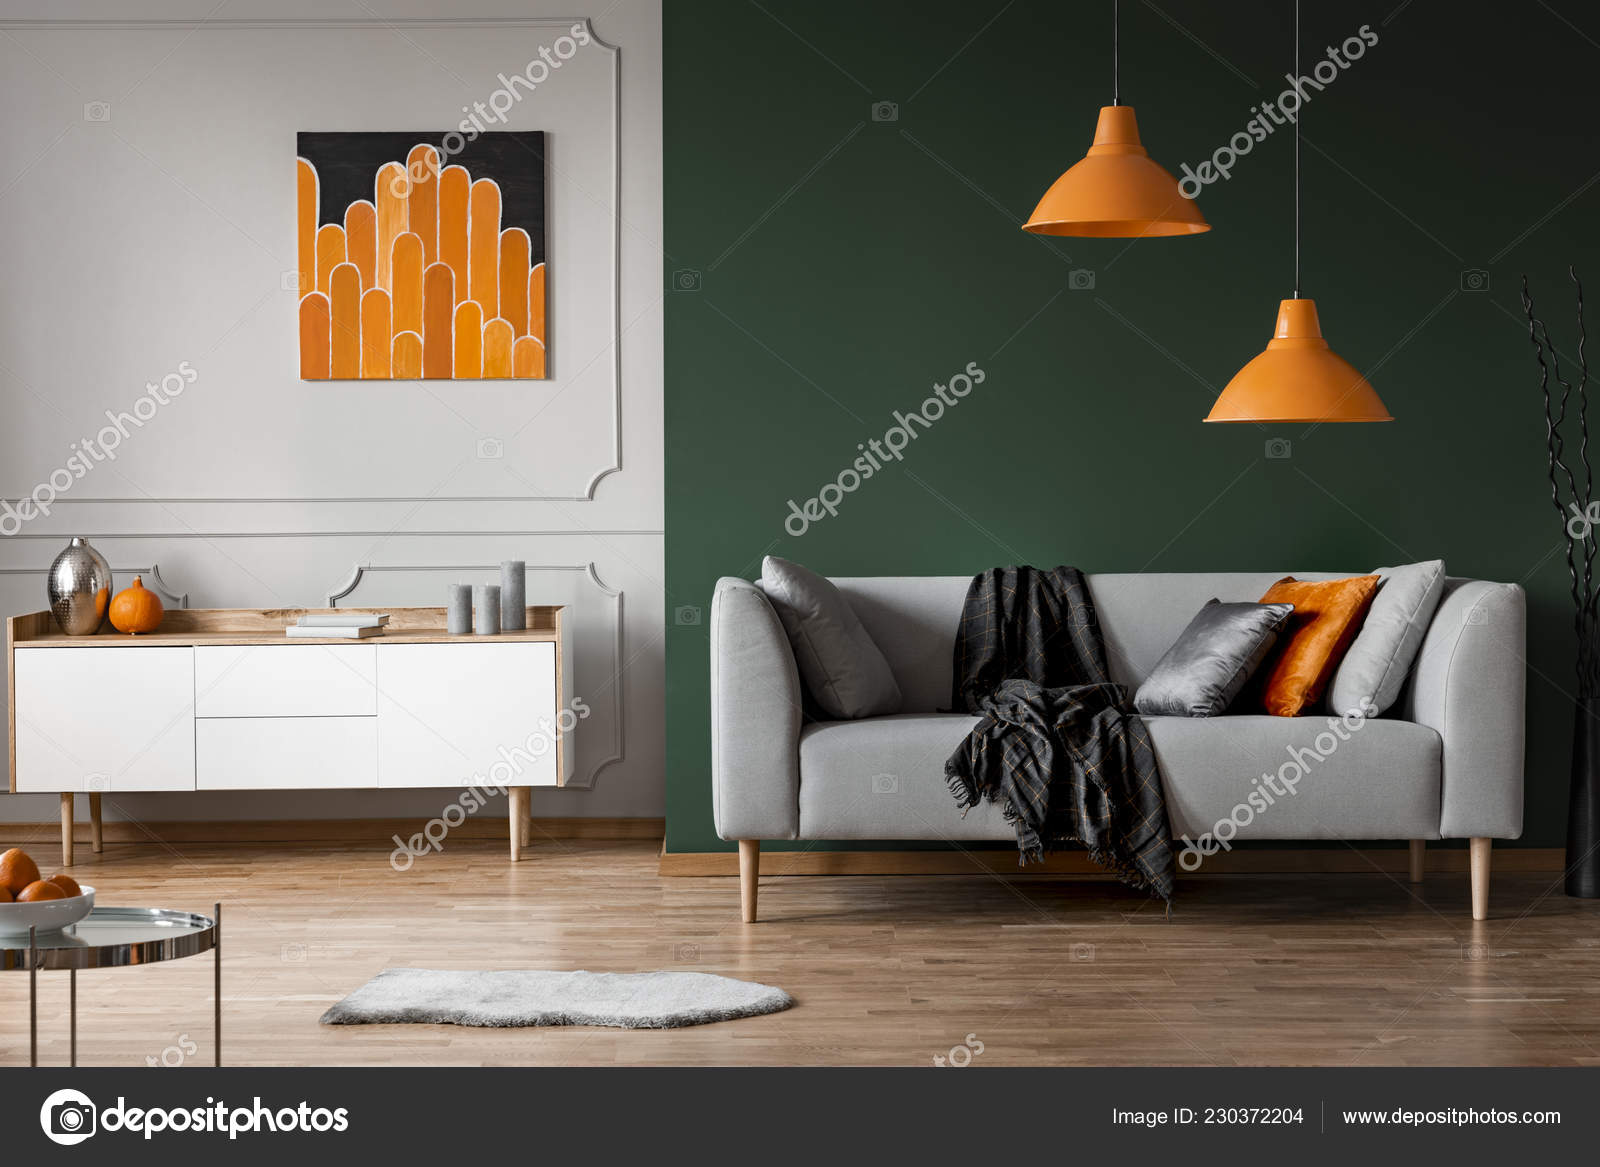 Orange Lamps Grey Couch Black Living Room Interior Poster ...